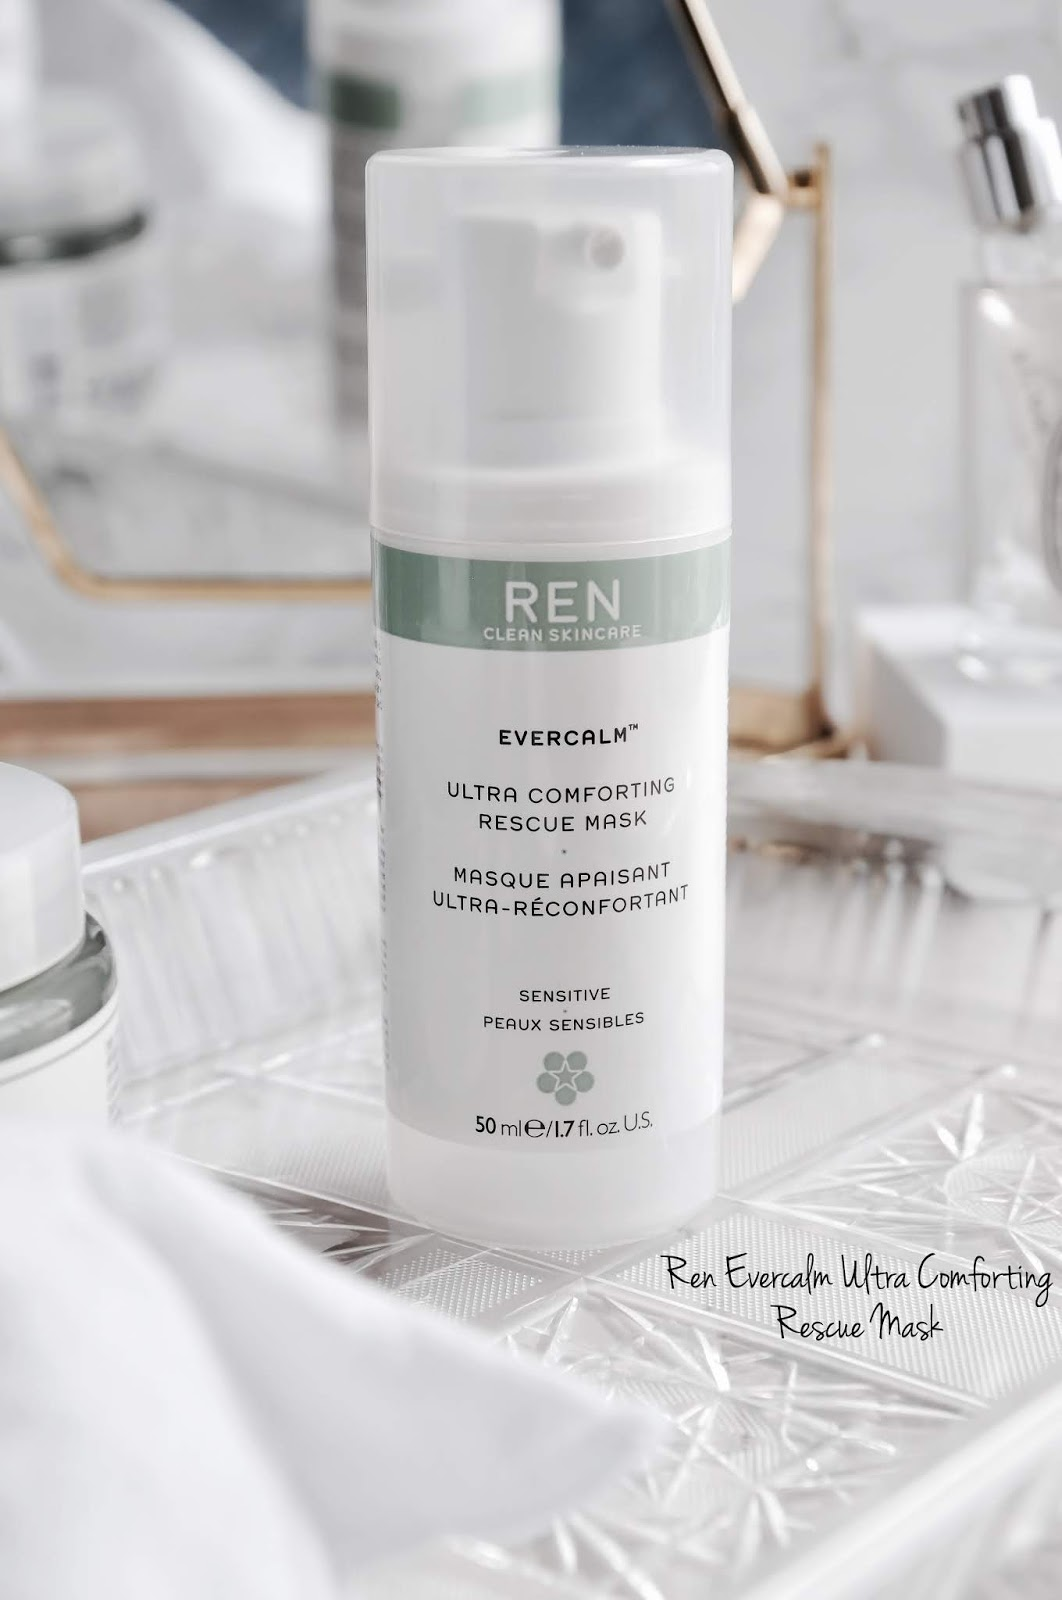 Ren Evercalm Ultra Comfort Rescue Mask Review